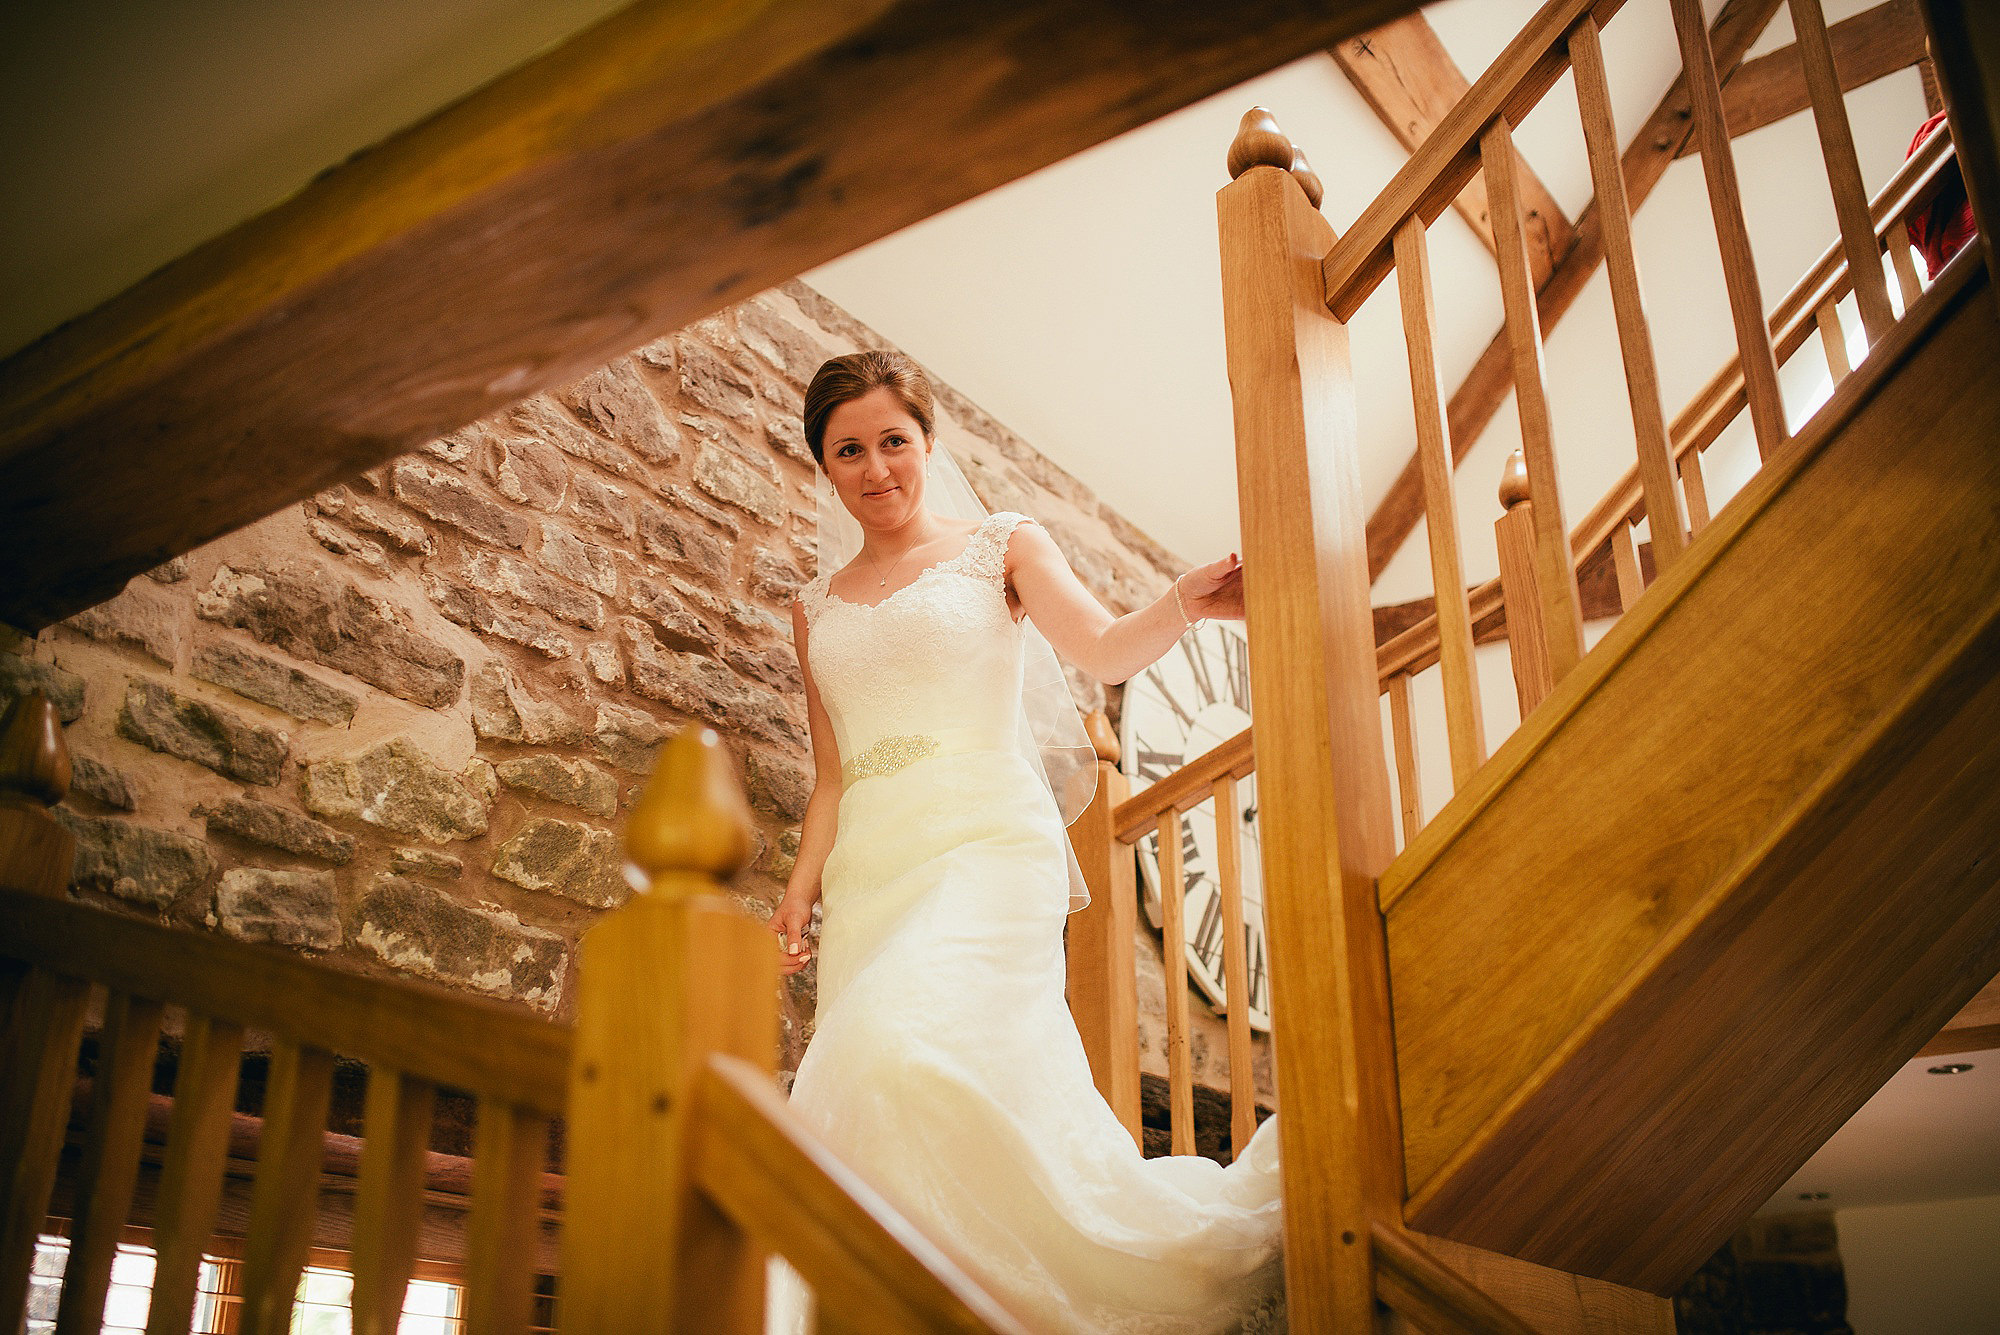 Bridal portrait at Flanesford Priory Herefordshire